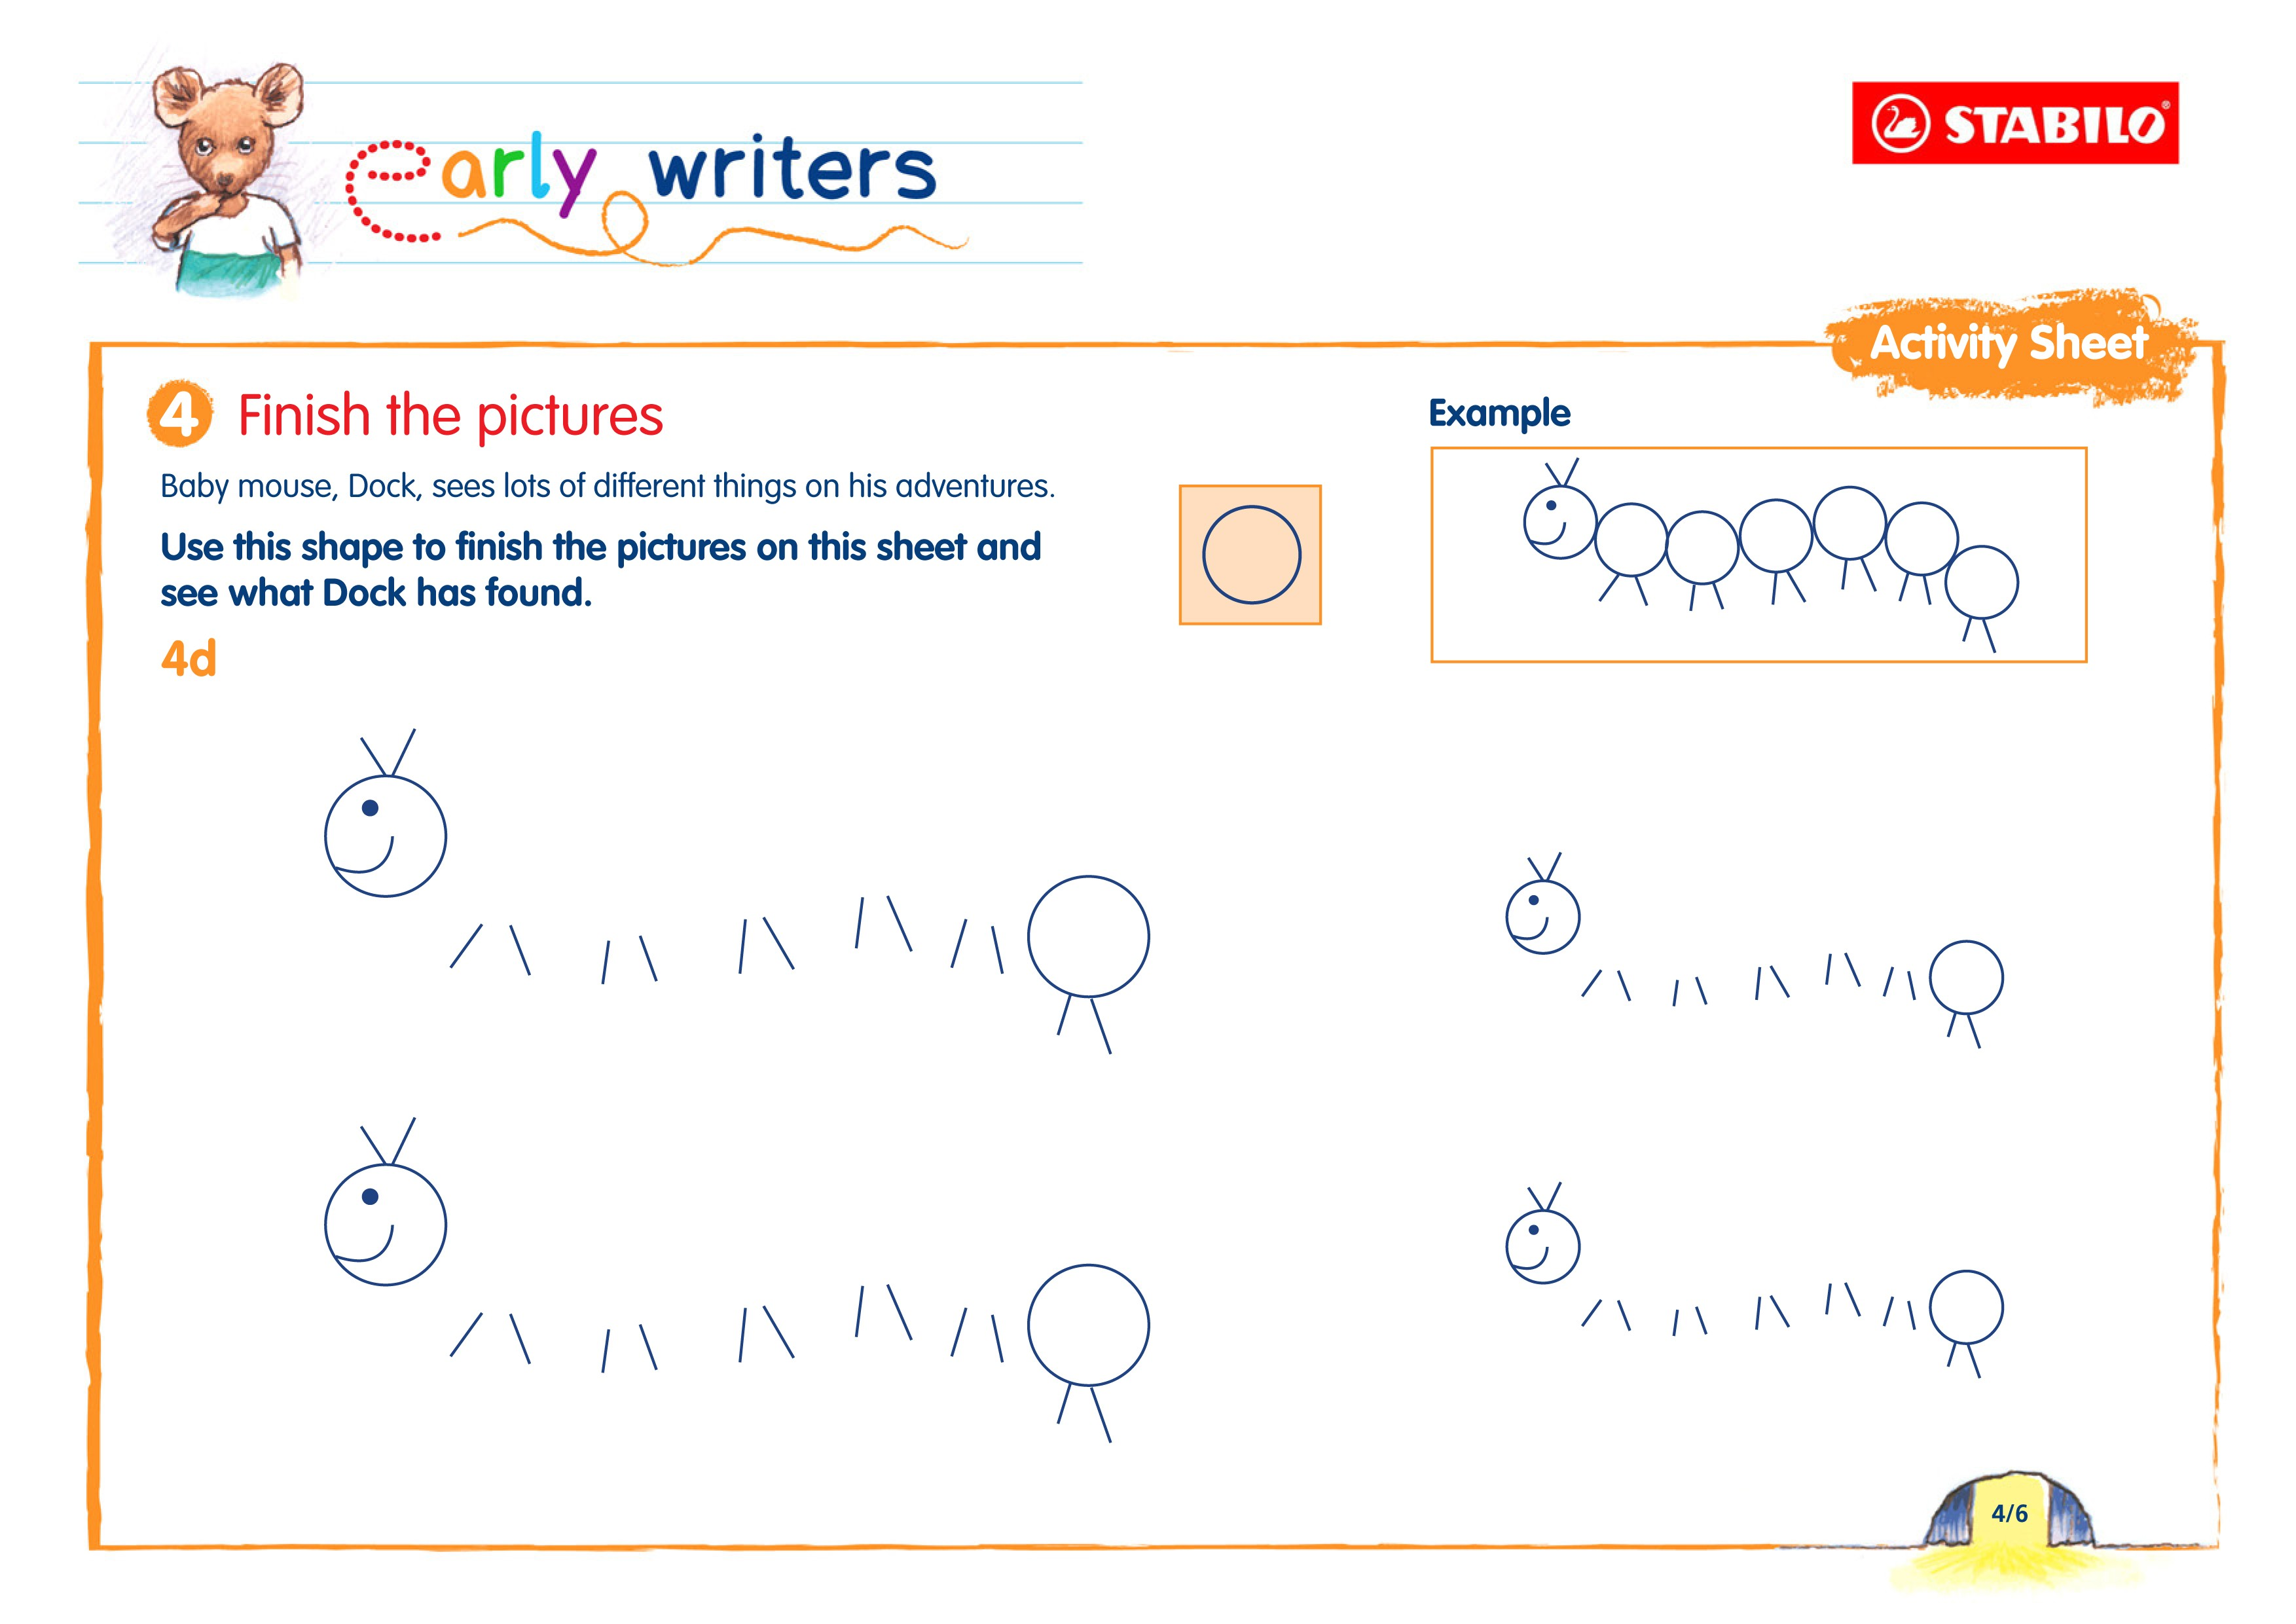 Free early writing activity sheets to print out - MadeForMums